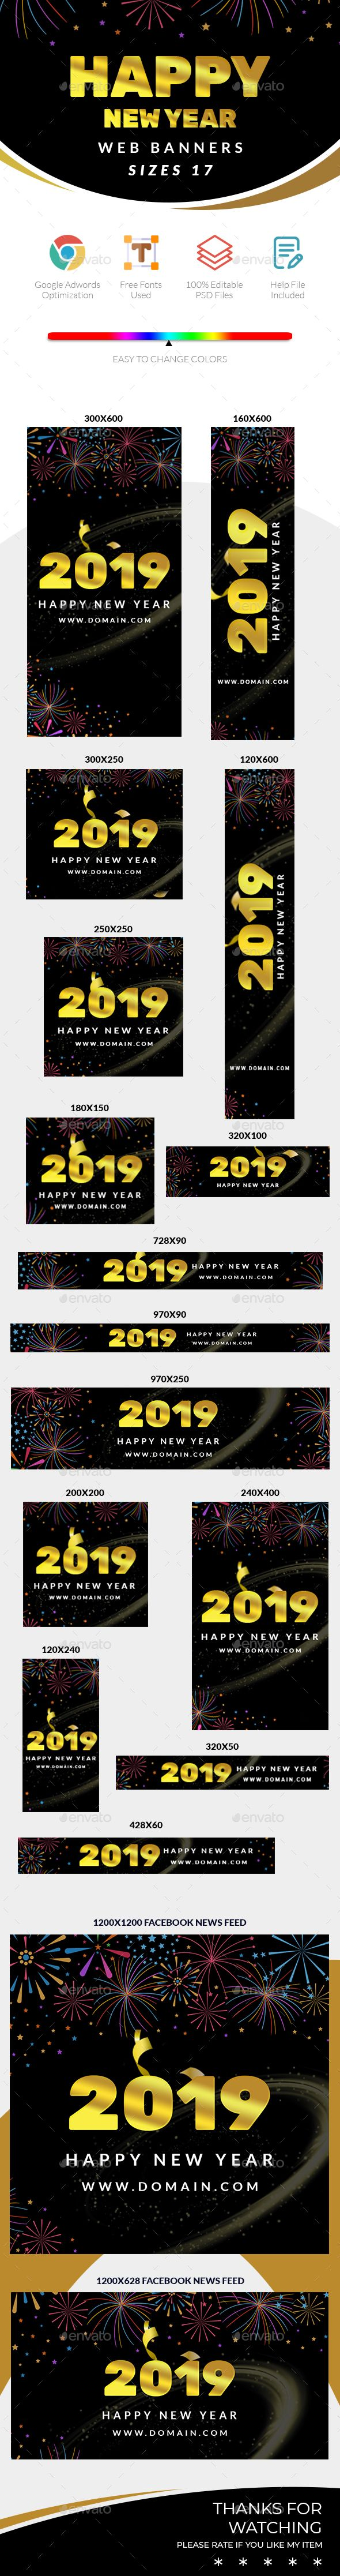 2019 happy new year web banners banners ads web elements